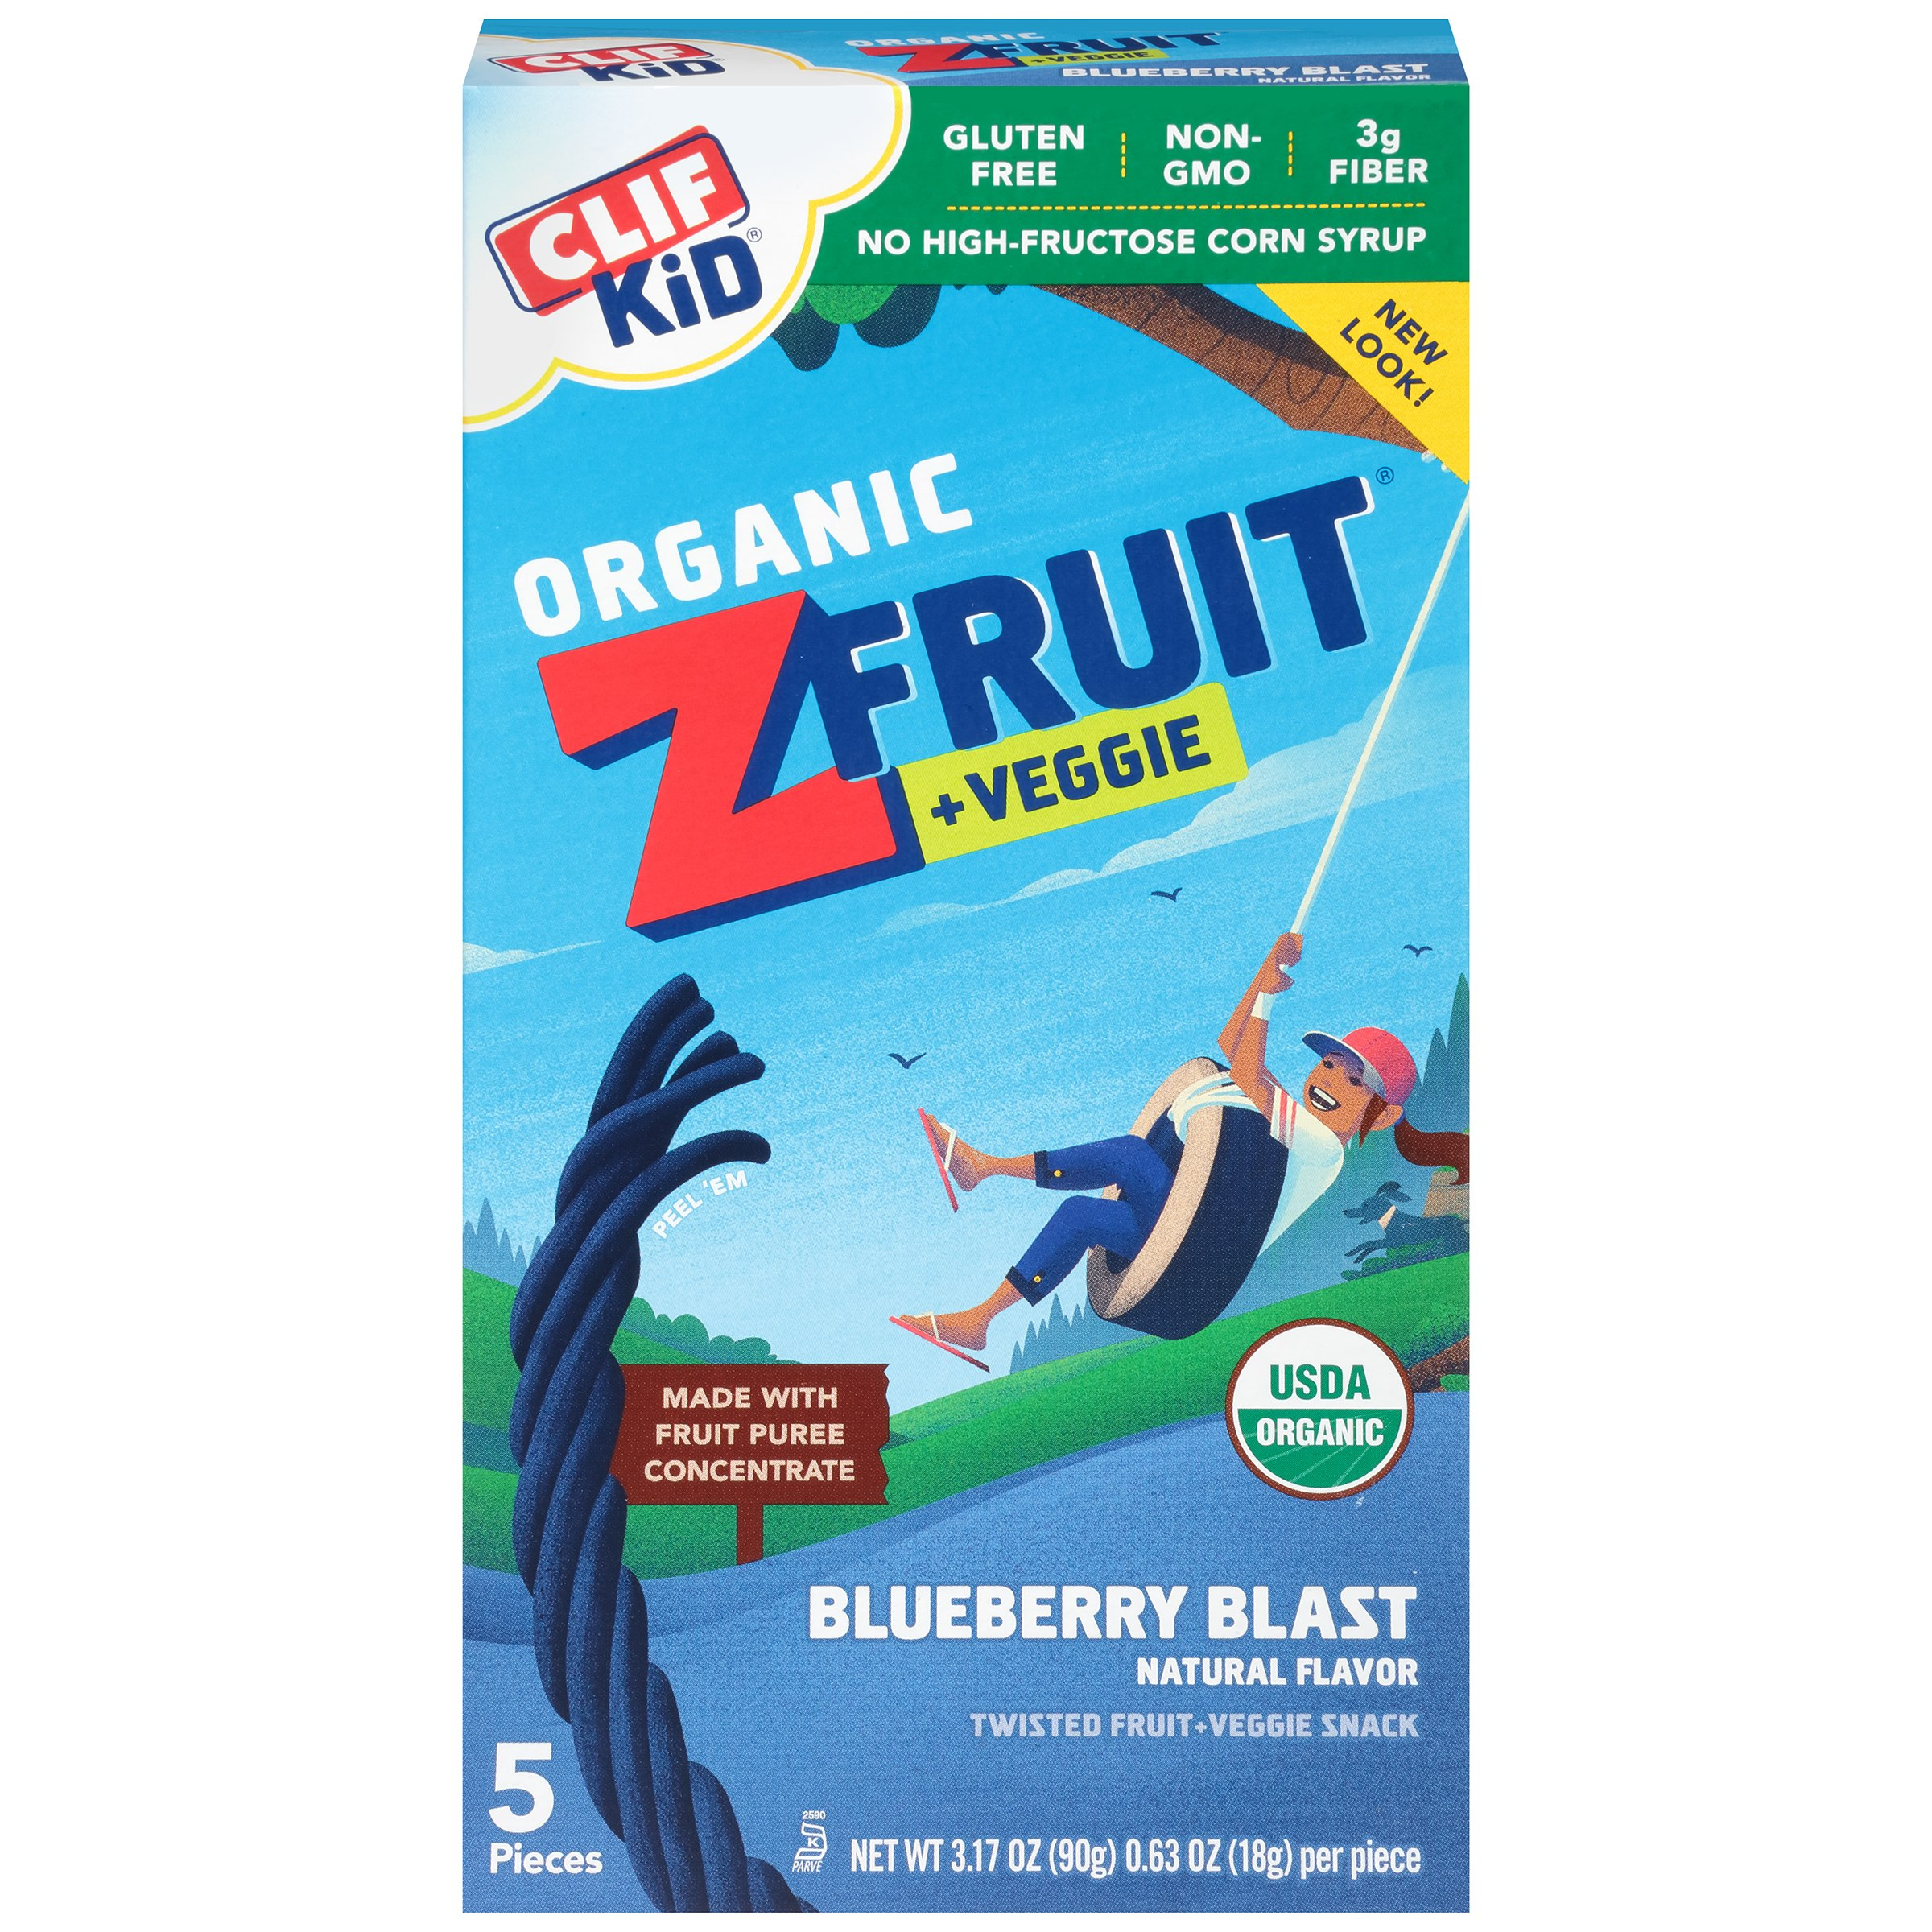 Clif Kid Organic Z Fruit + Veggie Fruit Twists, Blueberry Blast, 3.2 oz, 5 Ct